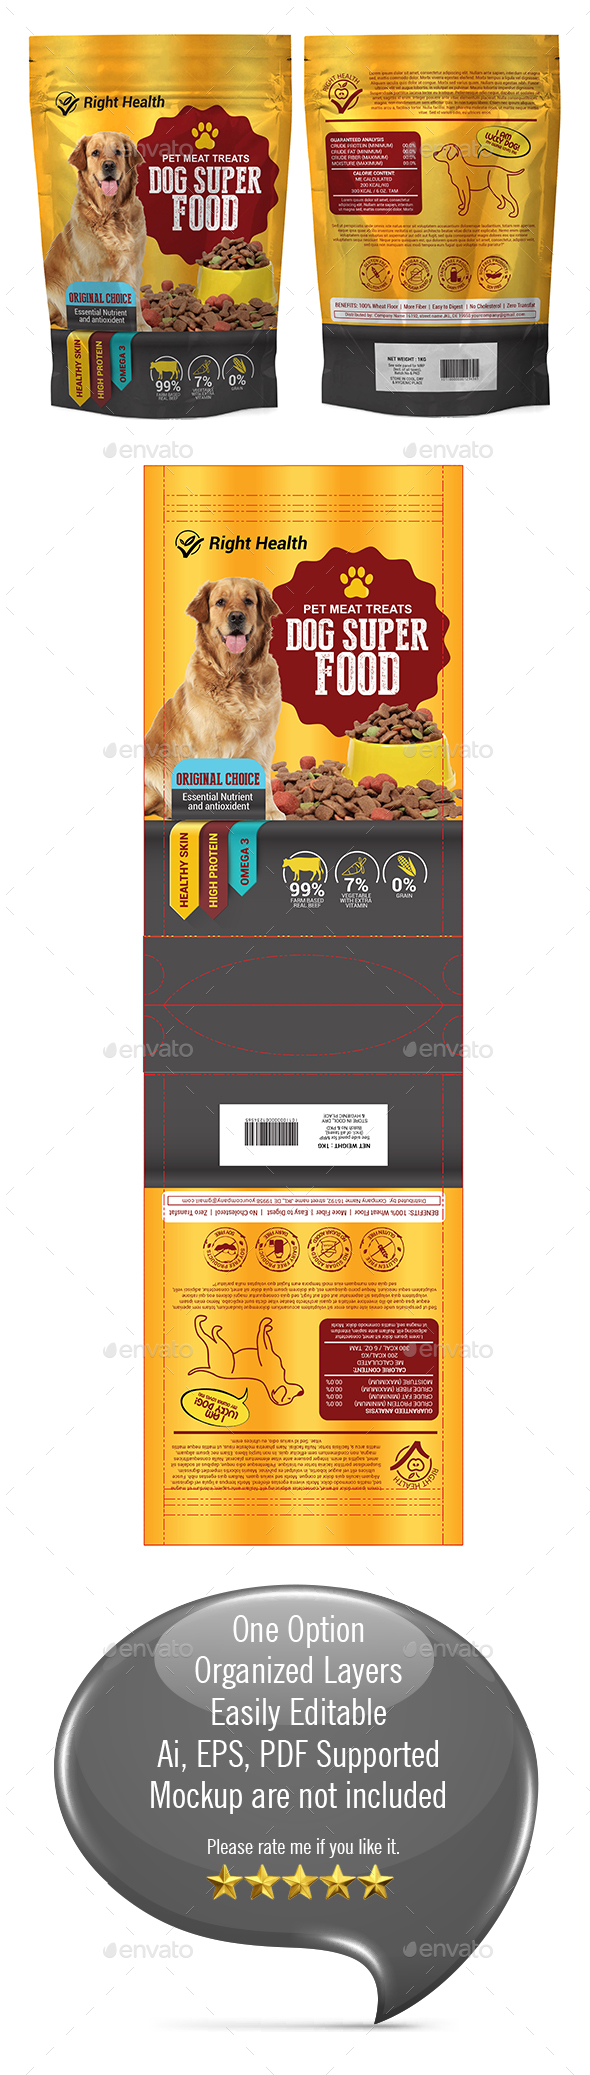 Dog Supplement Packaging Template-03 - Packaging Print Templates